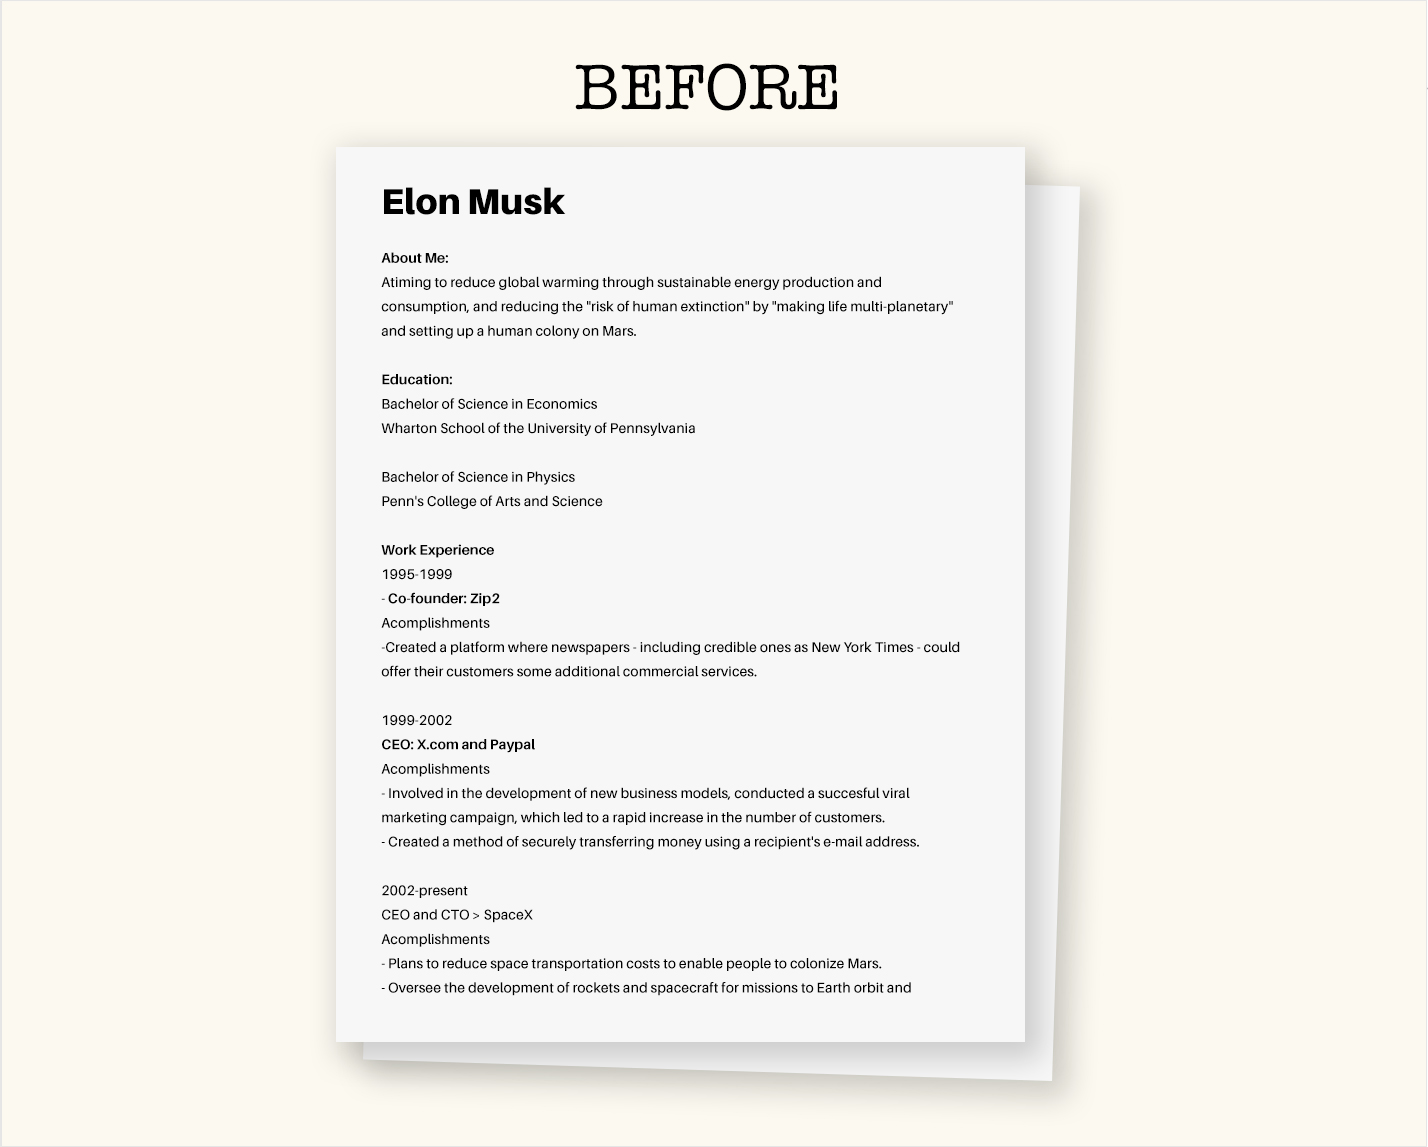 to create your own visual resume easy free business insider elon musk before freelance Resume Business Insider Elon Musk Resume